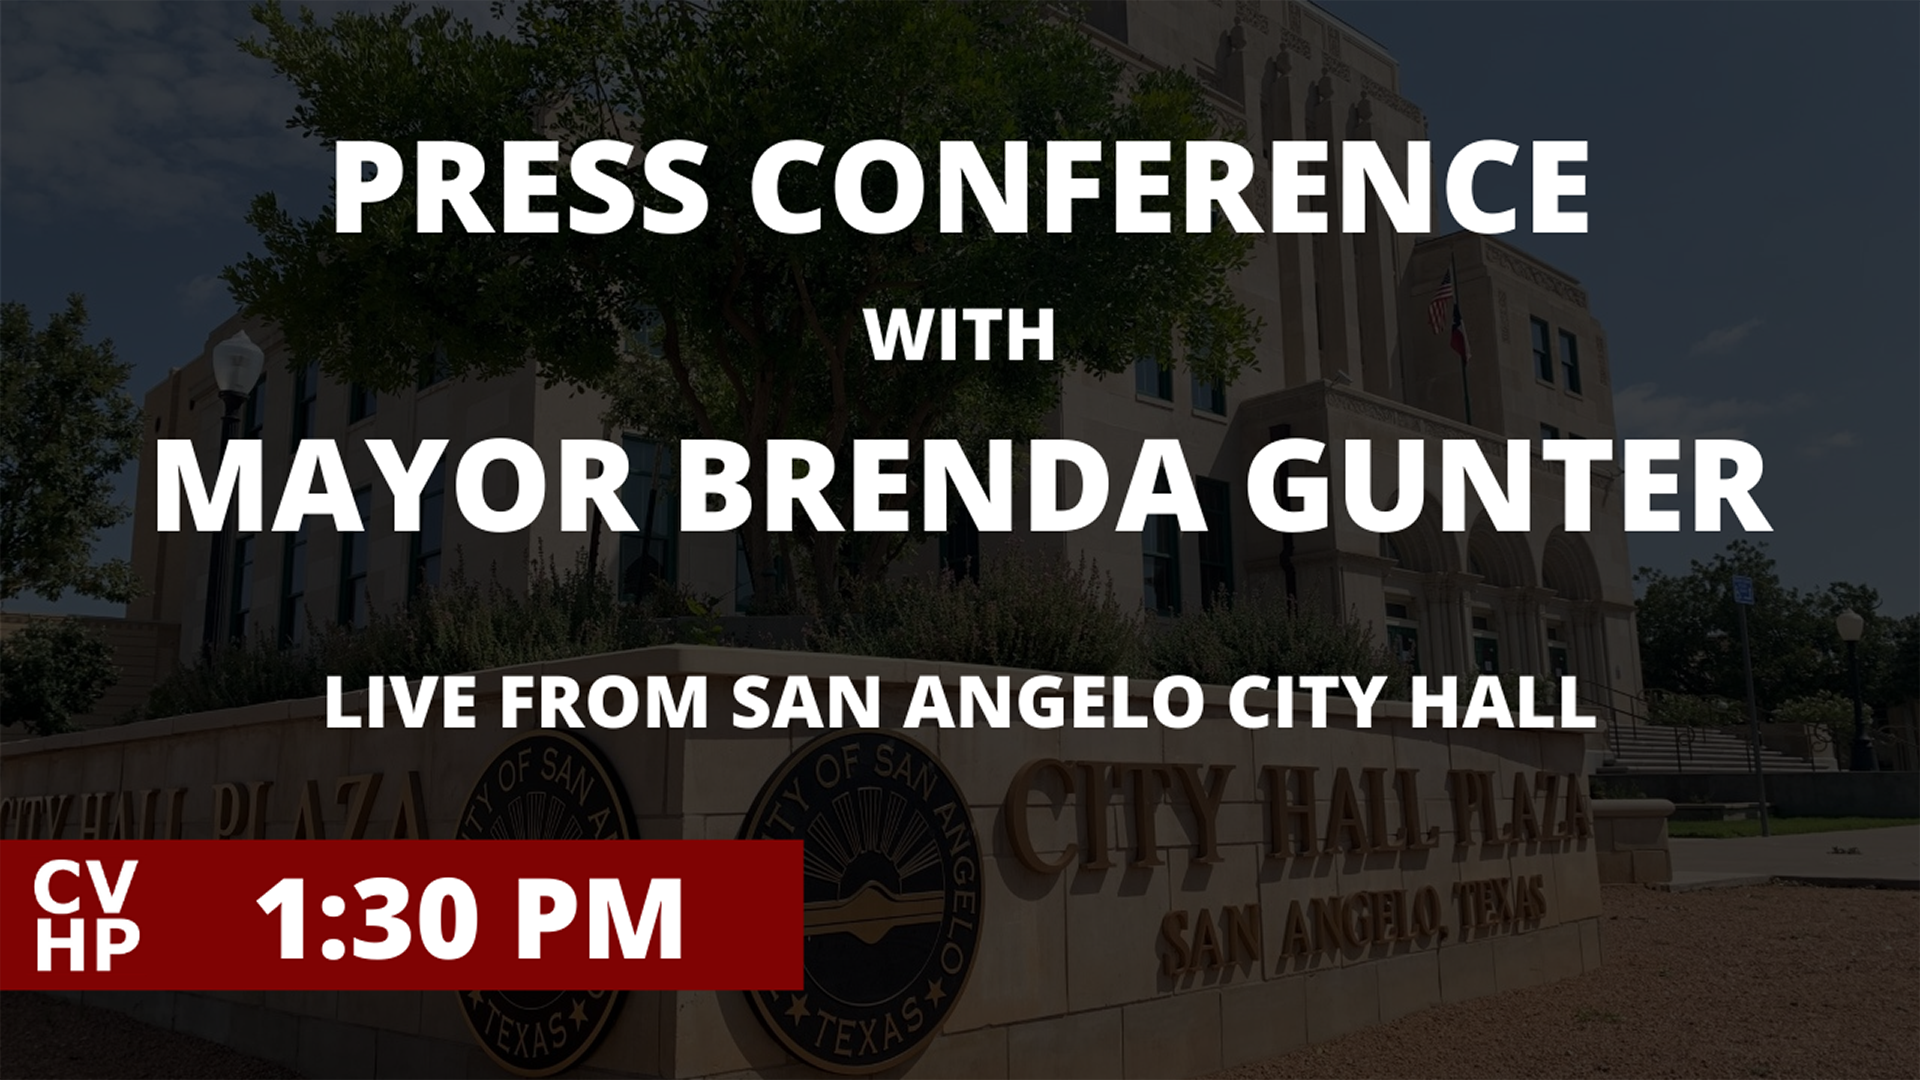 Press conference with Mayor Brenda Gunter - Live from City Hall - 1:30pm, Wednesday, September 23, 2020